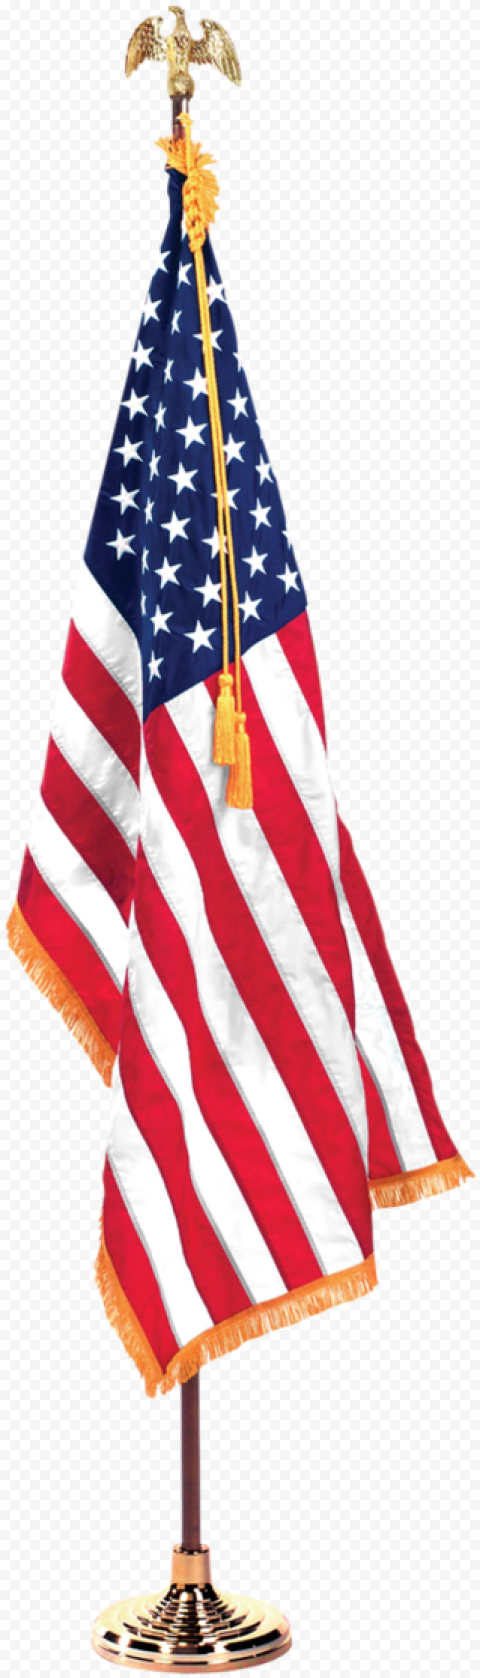 Indoor Office American Flag On Pole With Eagle On Top